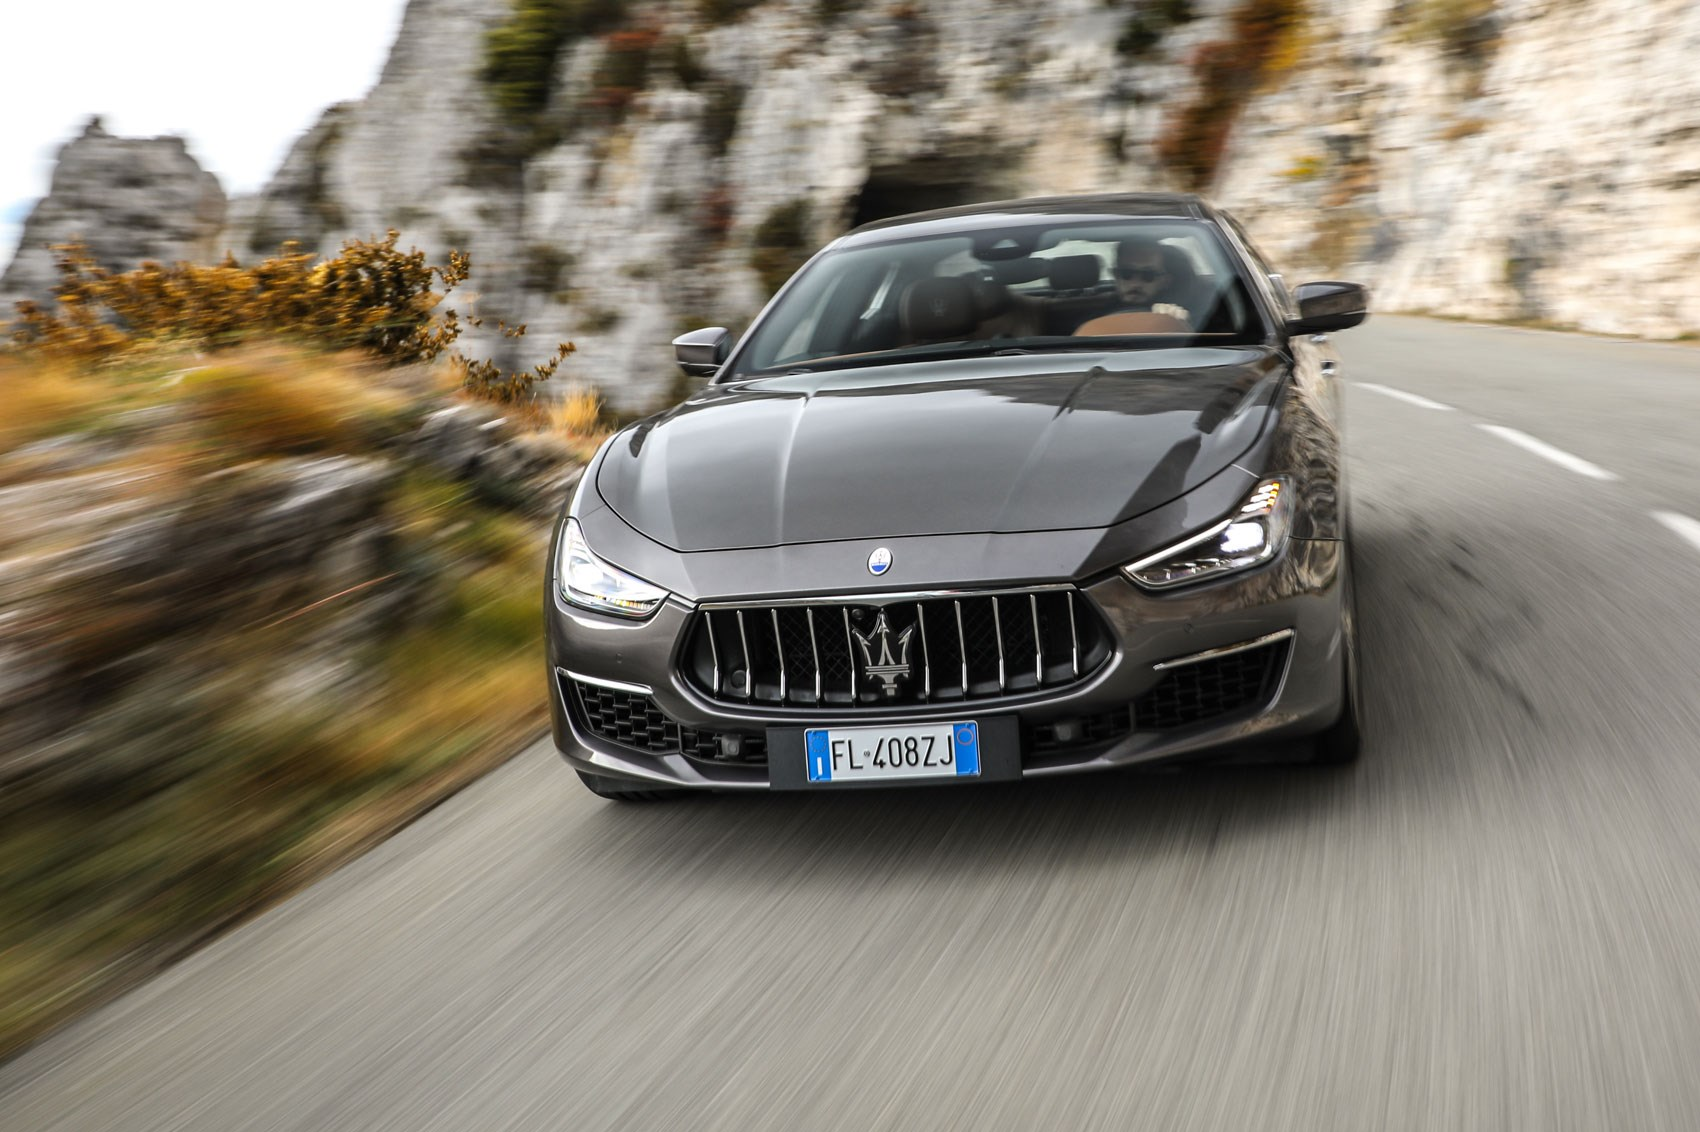 Maserati Ghibli Maserati Ghibli 2018 Review Car Magazine